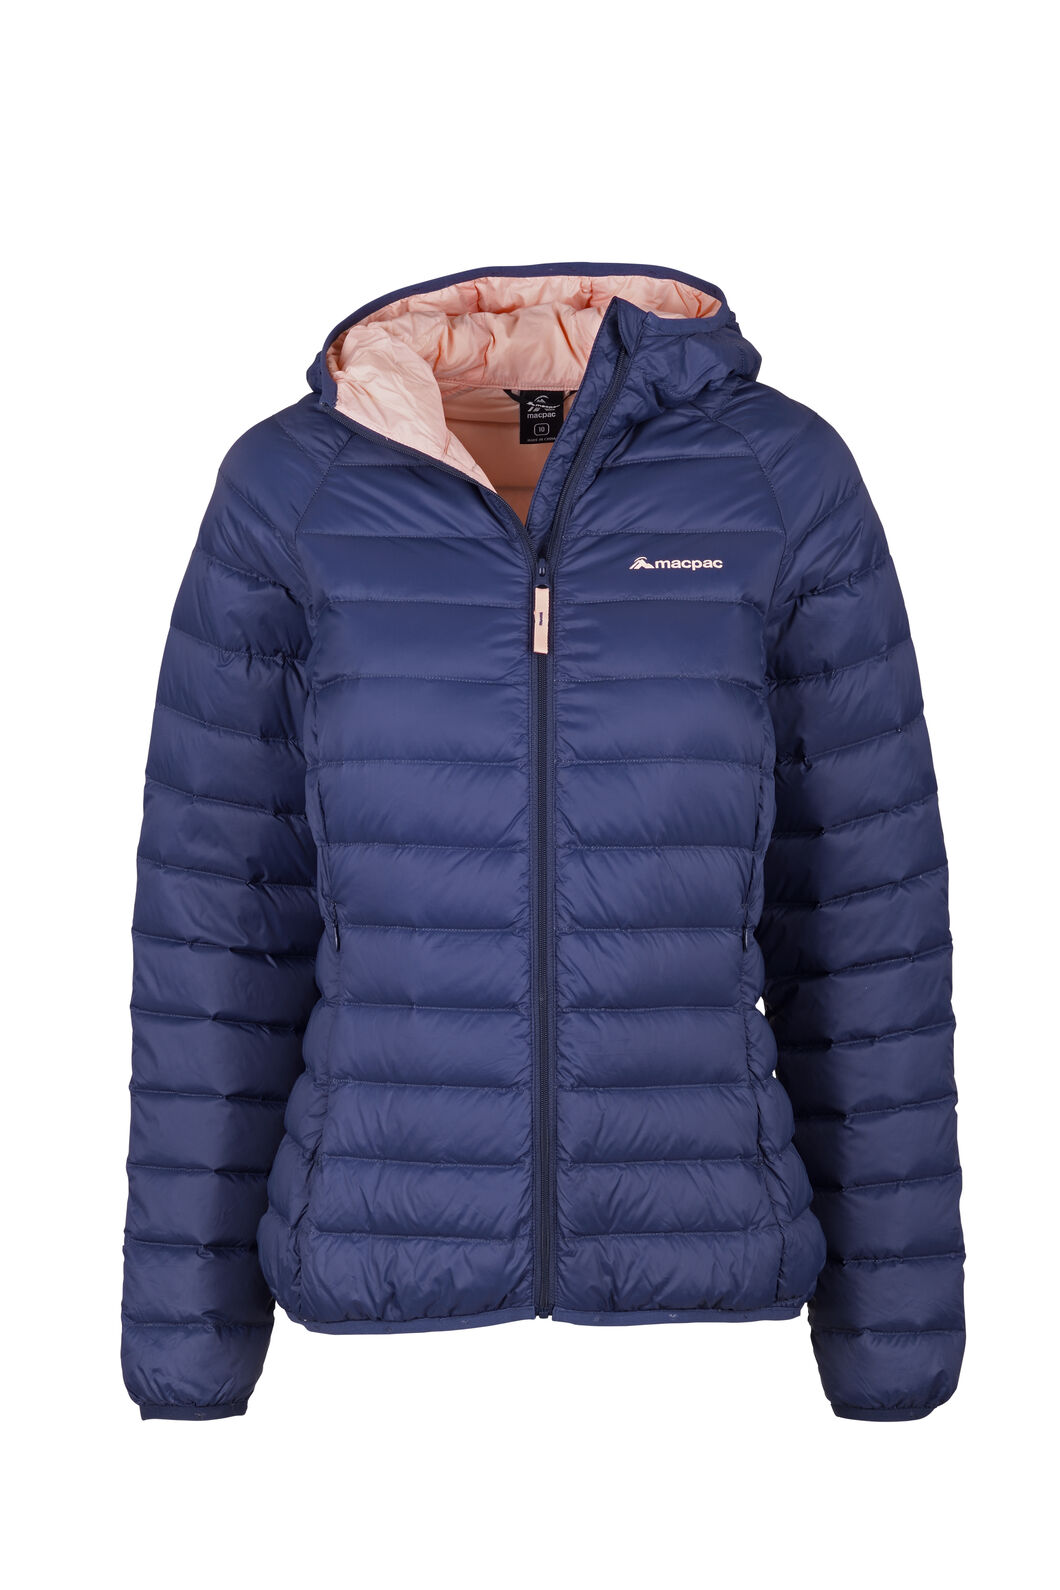 Macpac Uber Light Hooded Jacket - Women's, Mood Indigo, hi-res